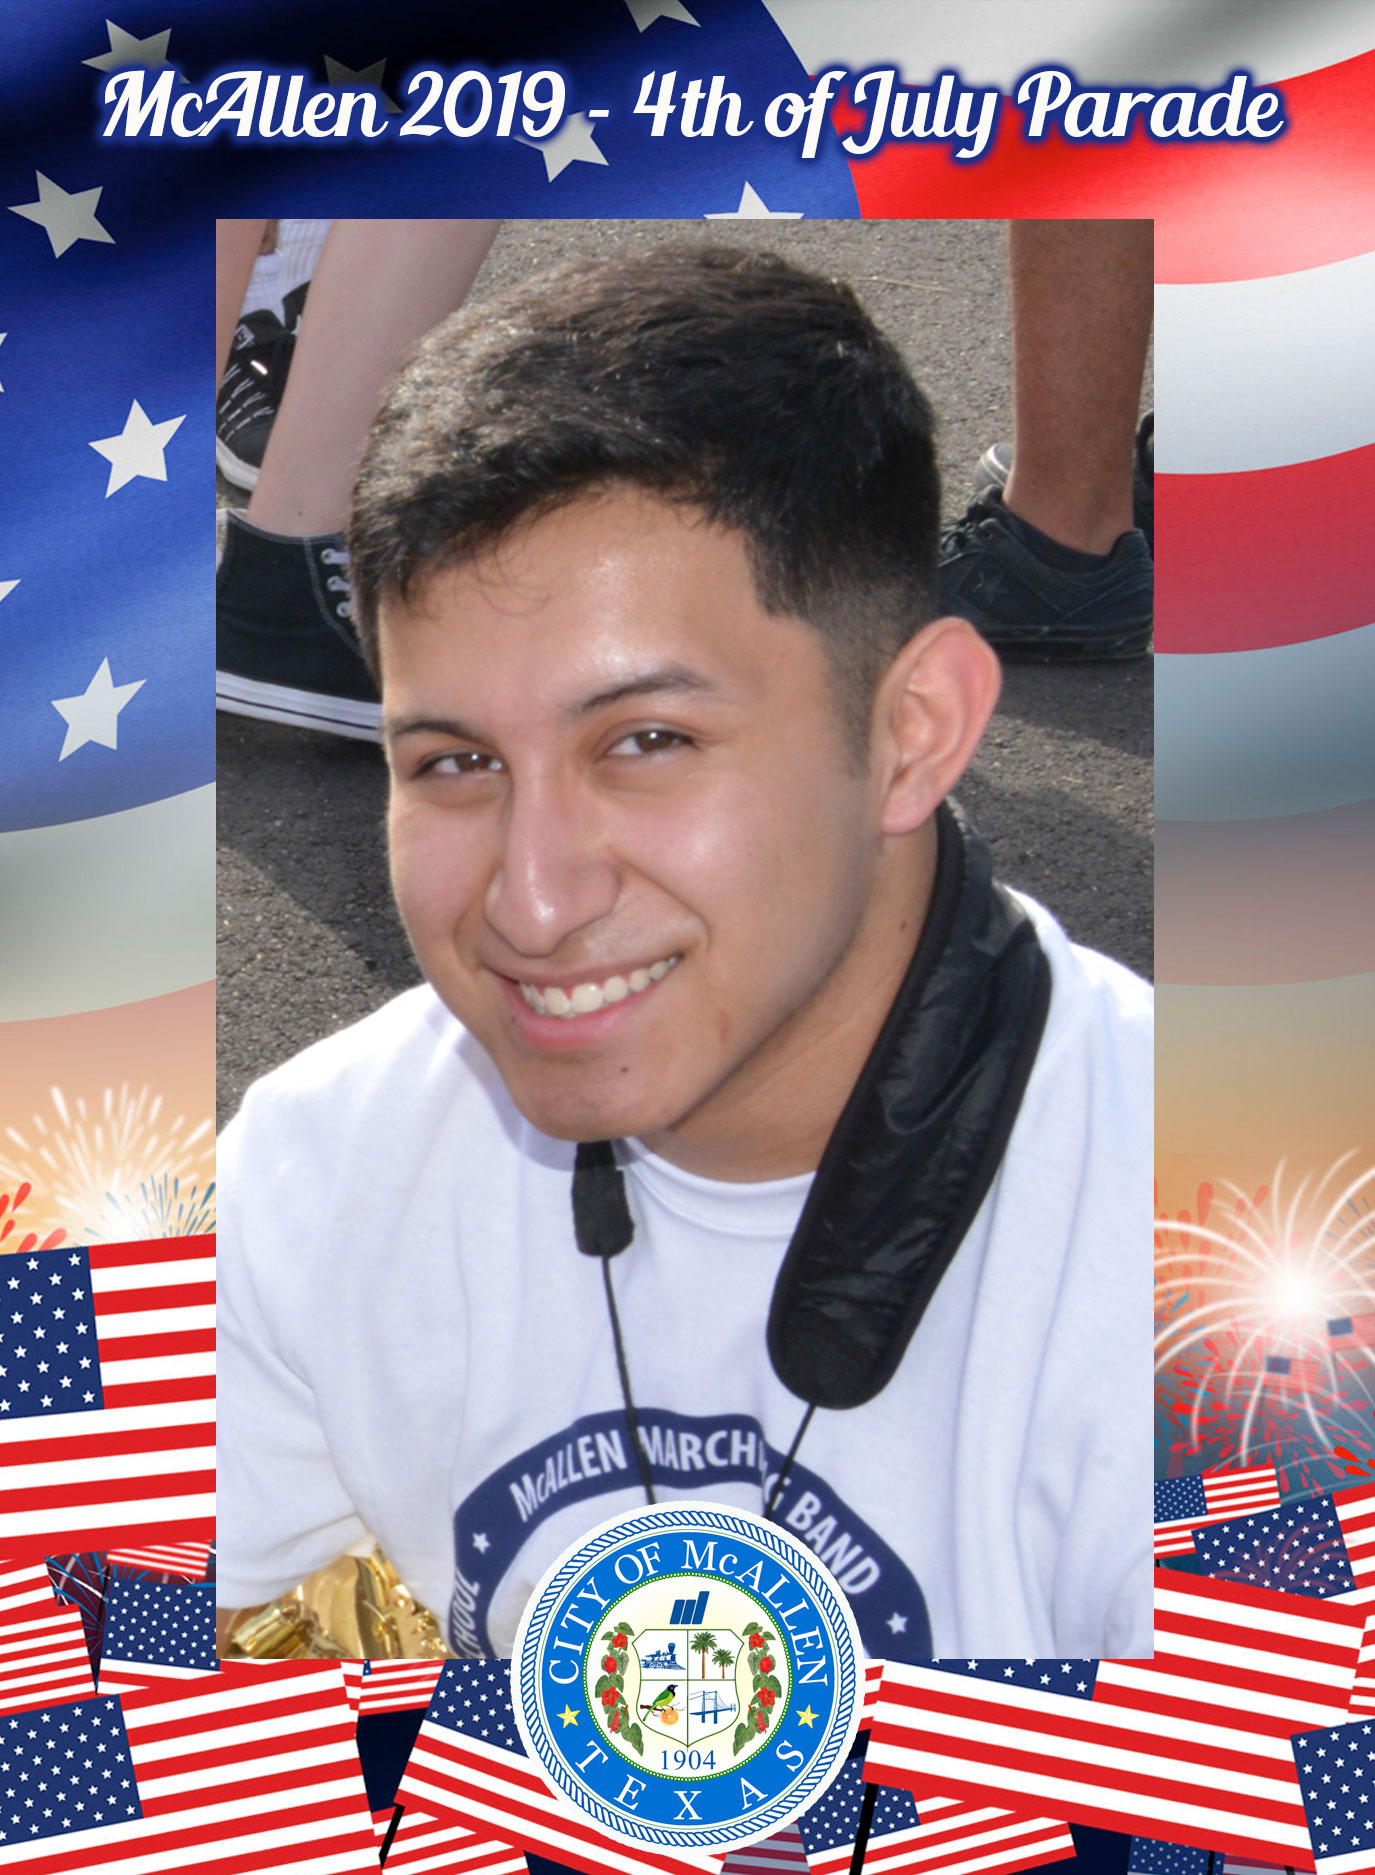 McAllen 4th of July Parade 2019 – Faces Part 3